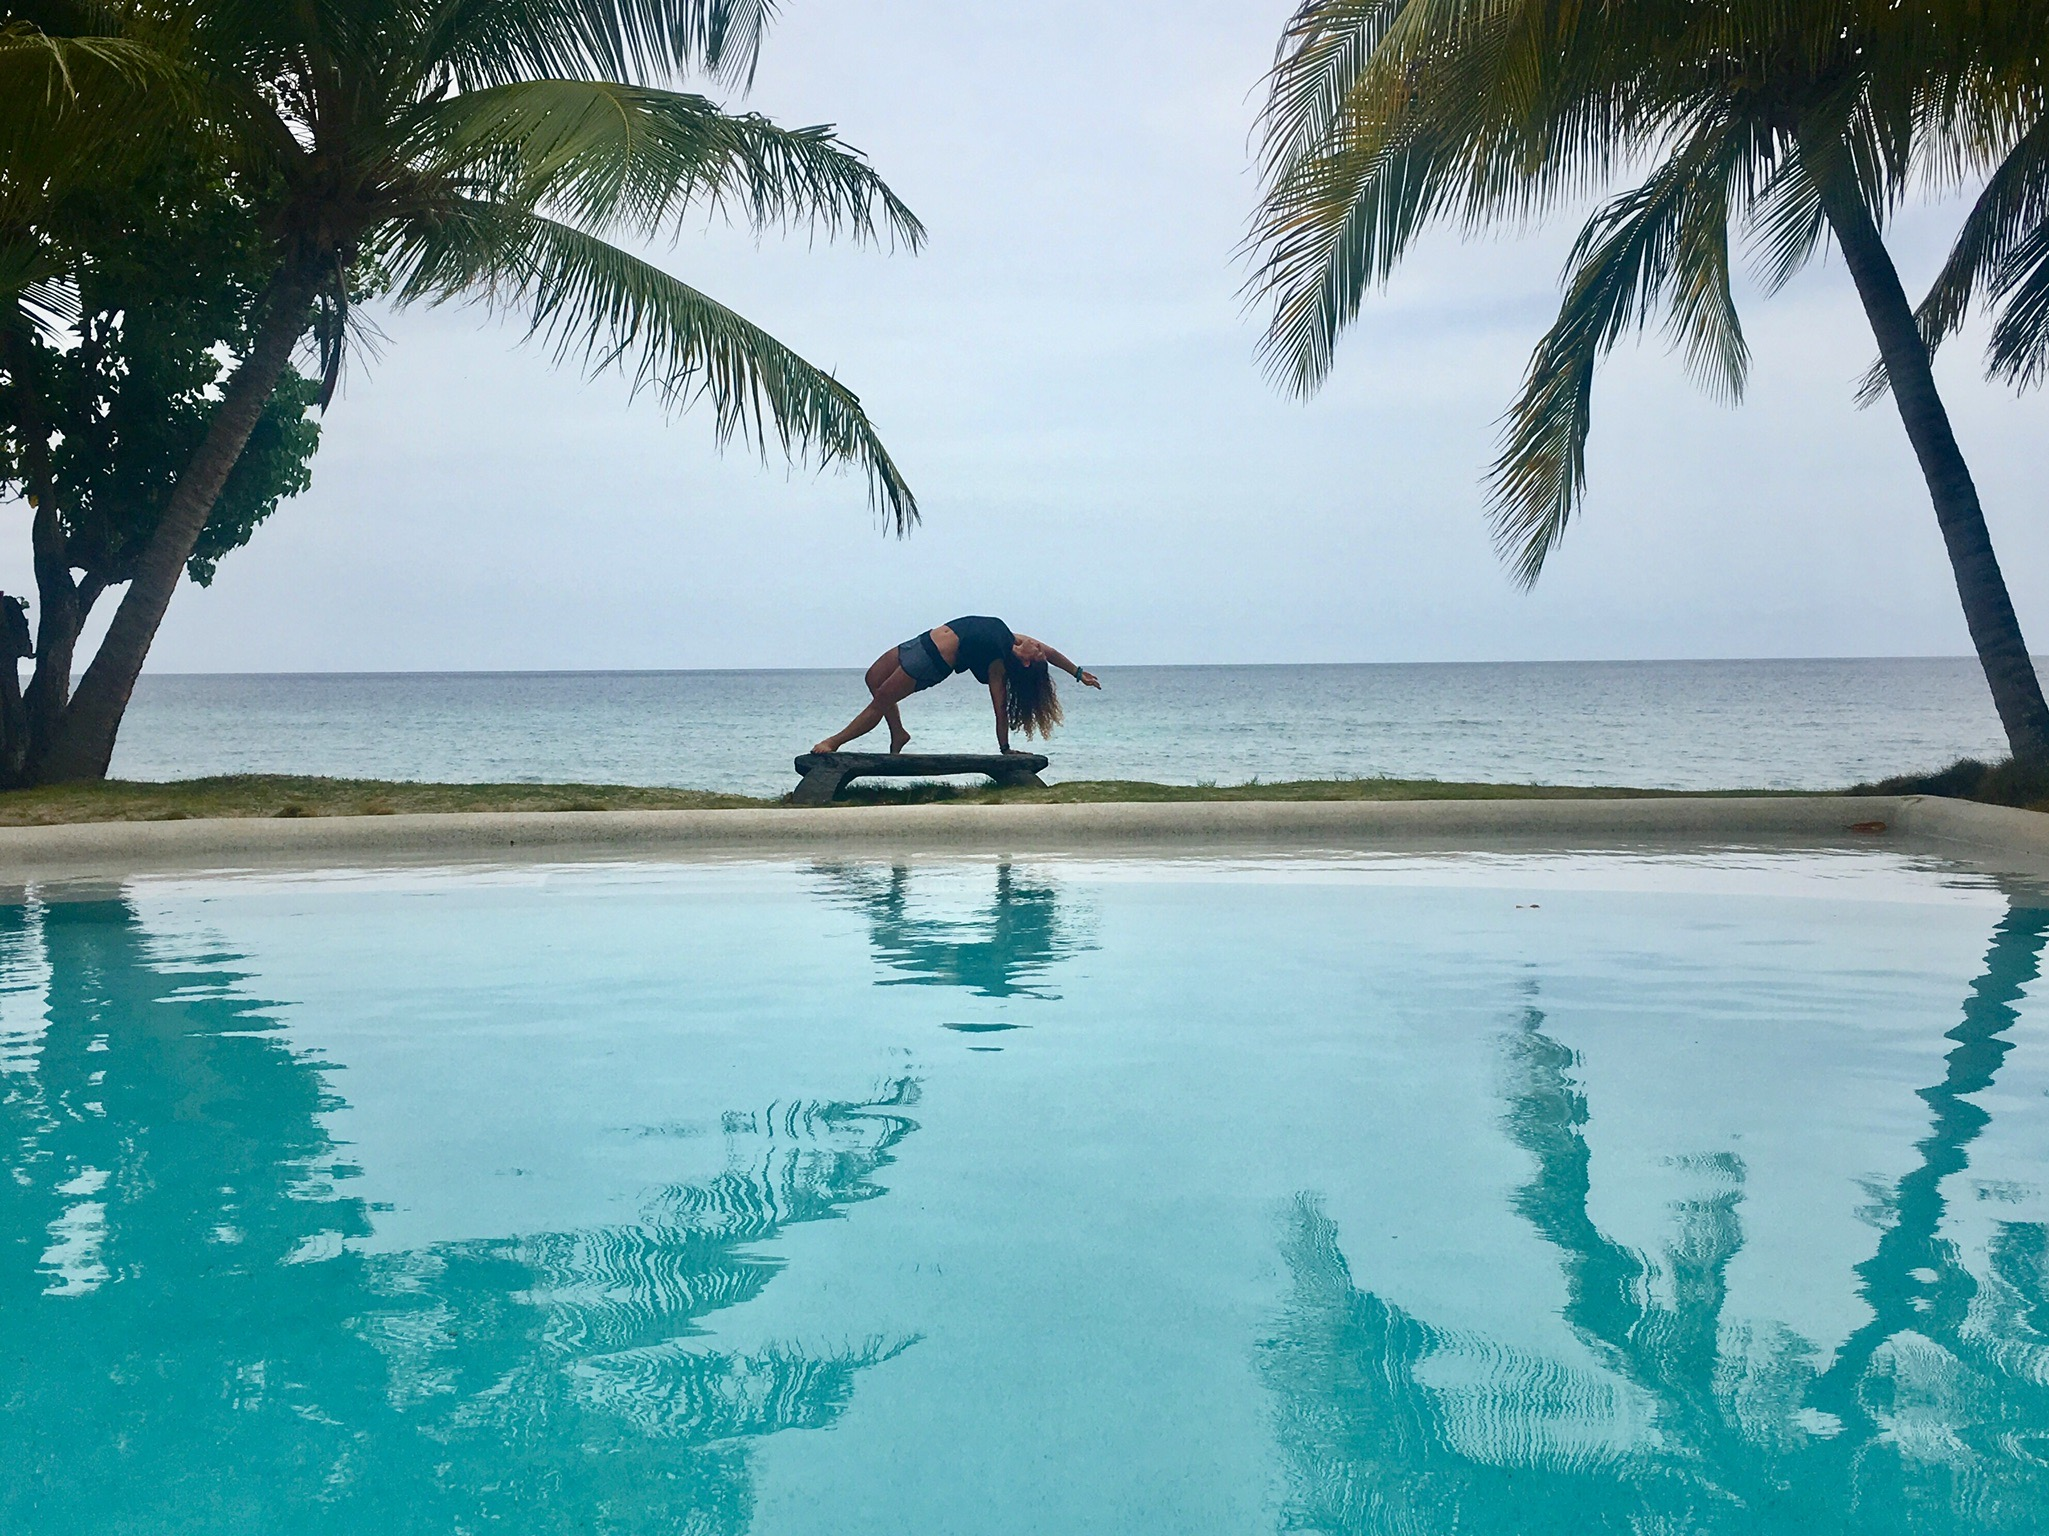 Yoga Retreats are the opportunity to travel with purpose, striving for self-care, wellbeing and life balance. …….